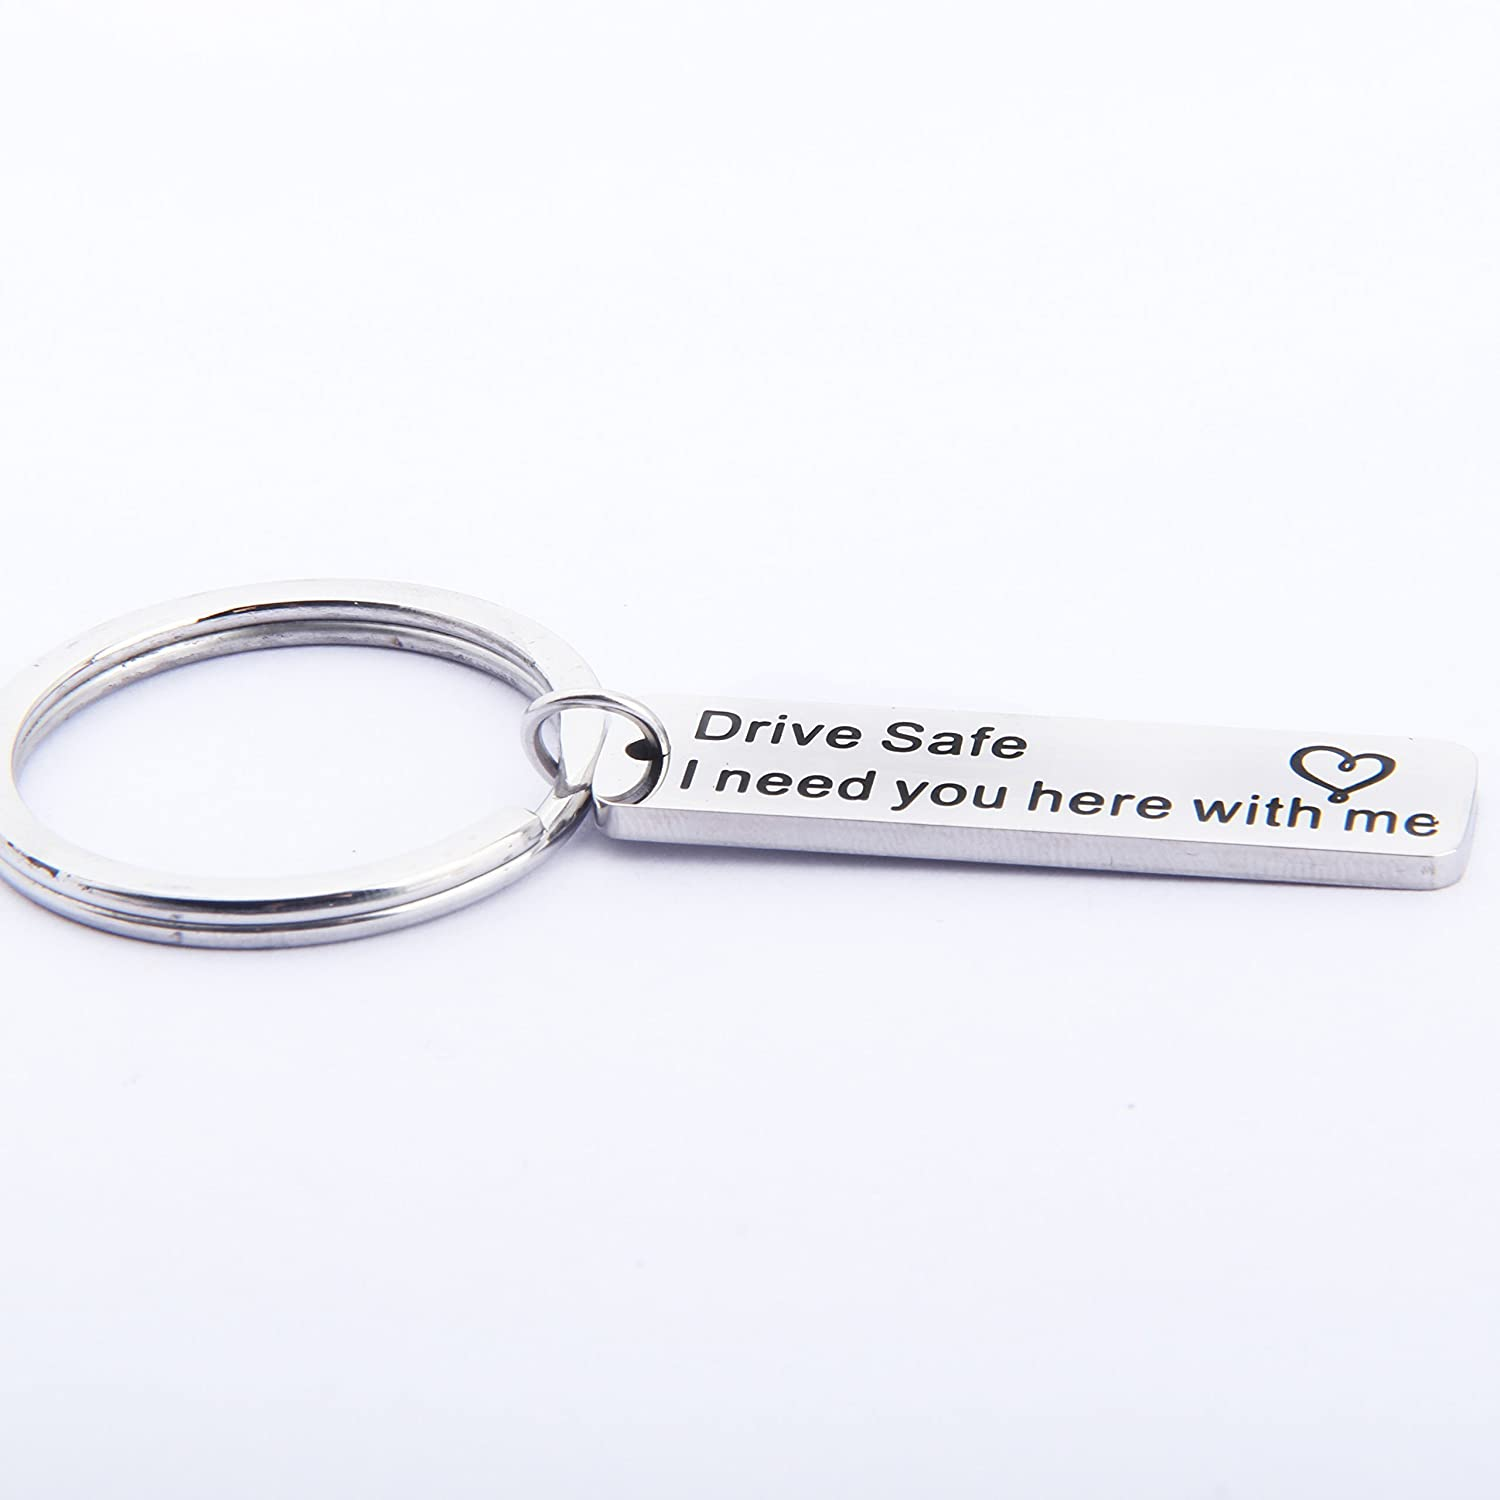 Lywjyb Birdgot Drive Safe I Need You Here with Me Keychain/Necklace New Driver Gift for Her or Him